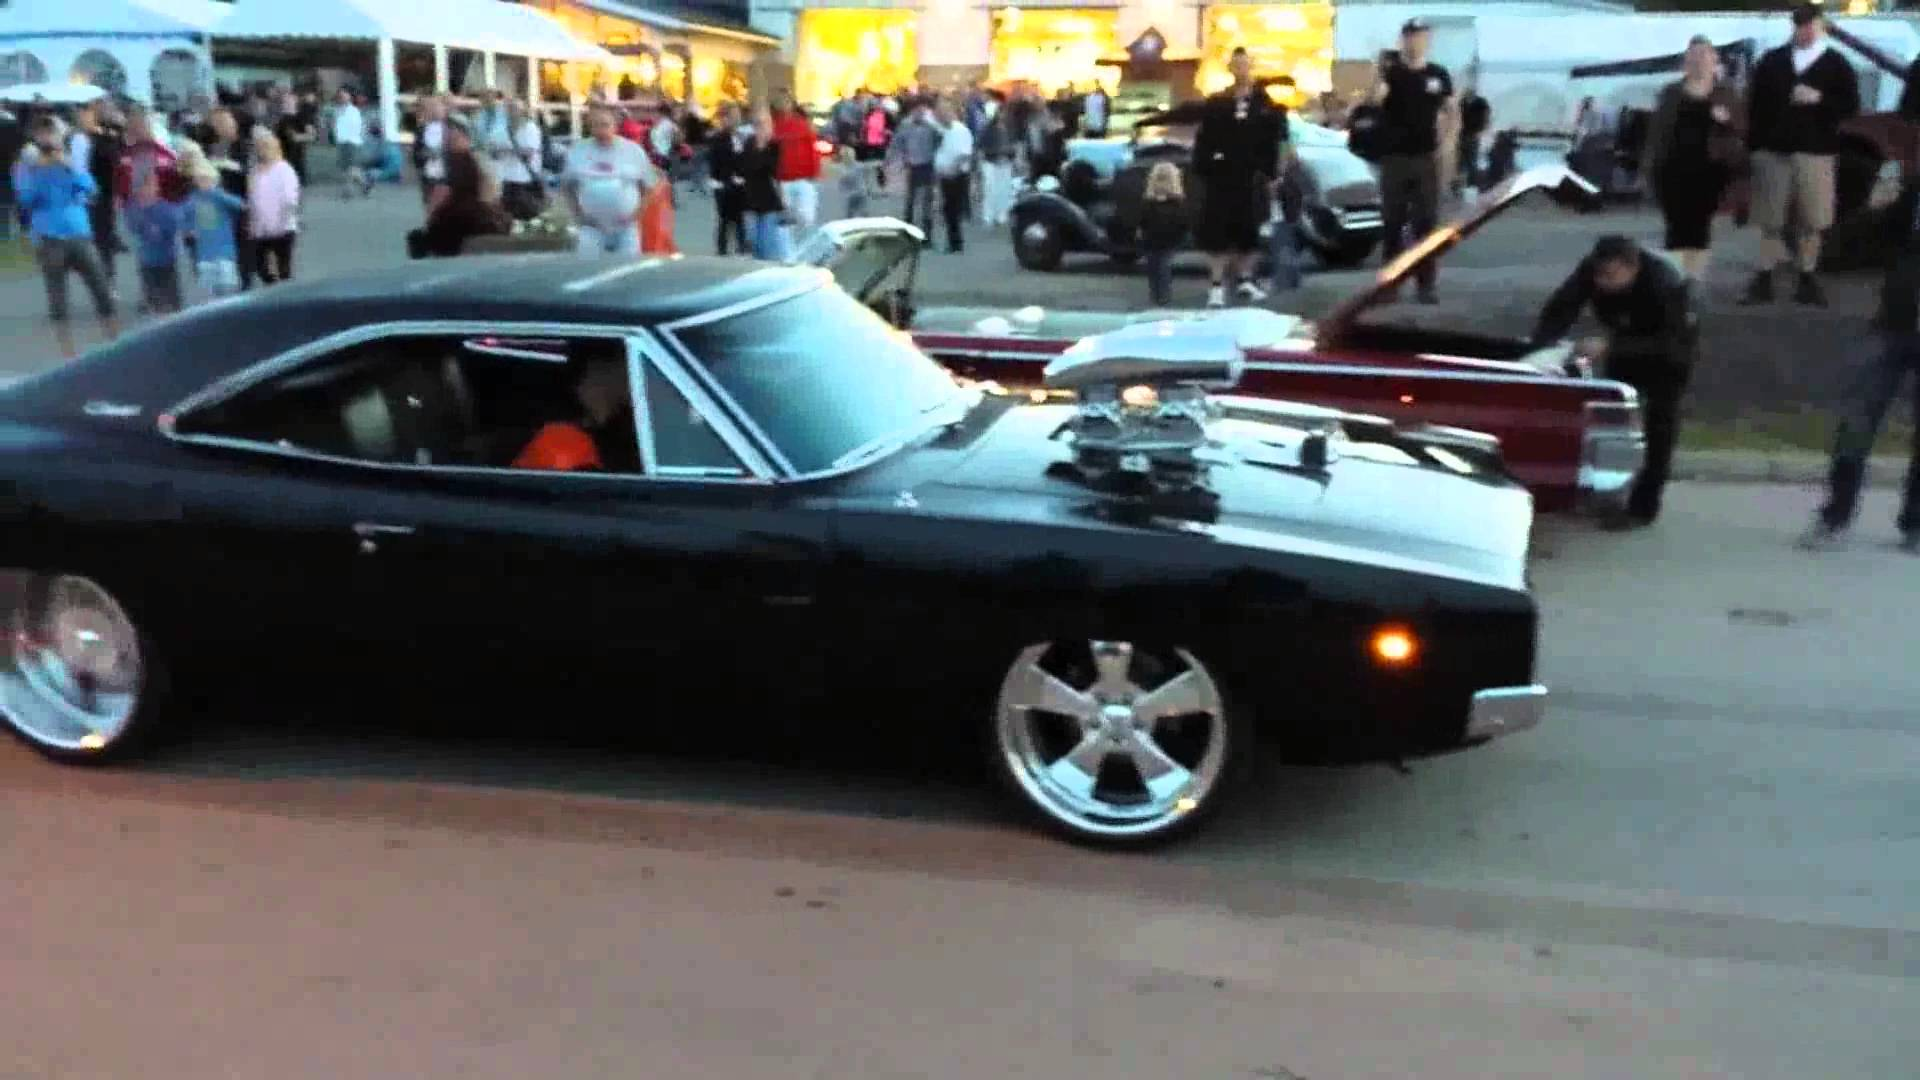 Exotic Cars Wallpaper Pack This Killer Blown 1968 Dodge Charger Performs An Epic Burnout